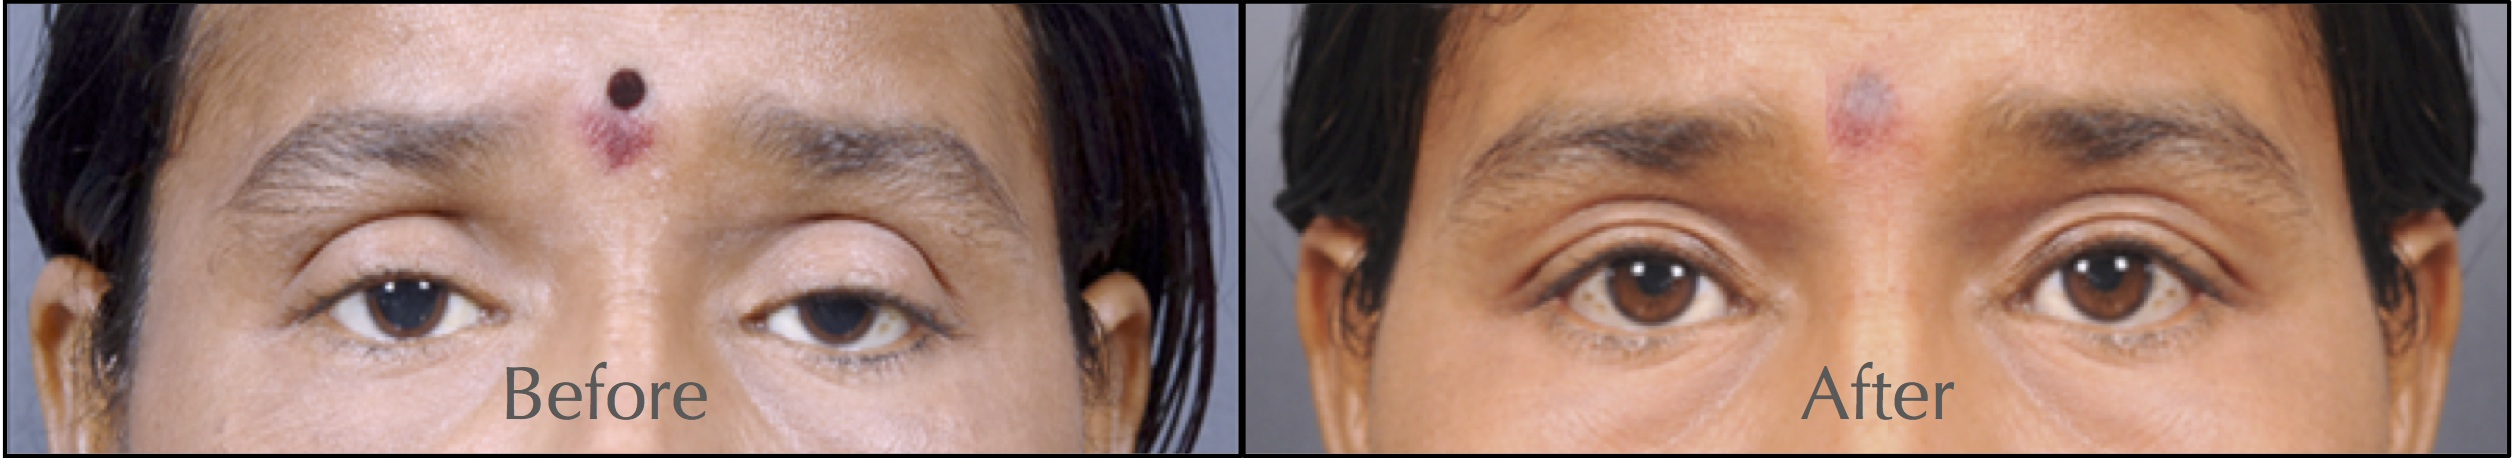 5 Quick Questions on Ptosis